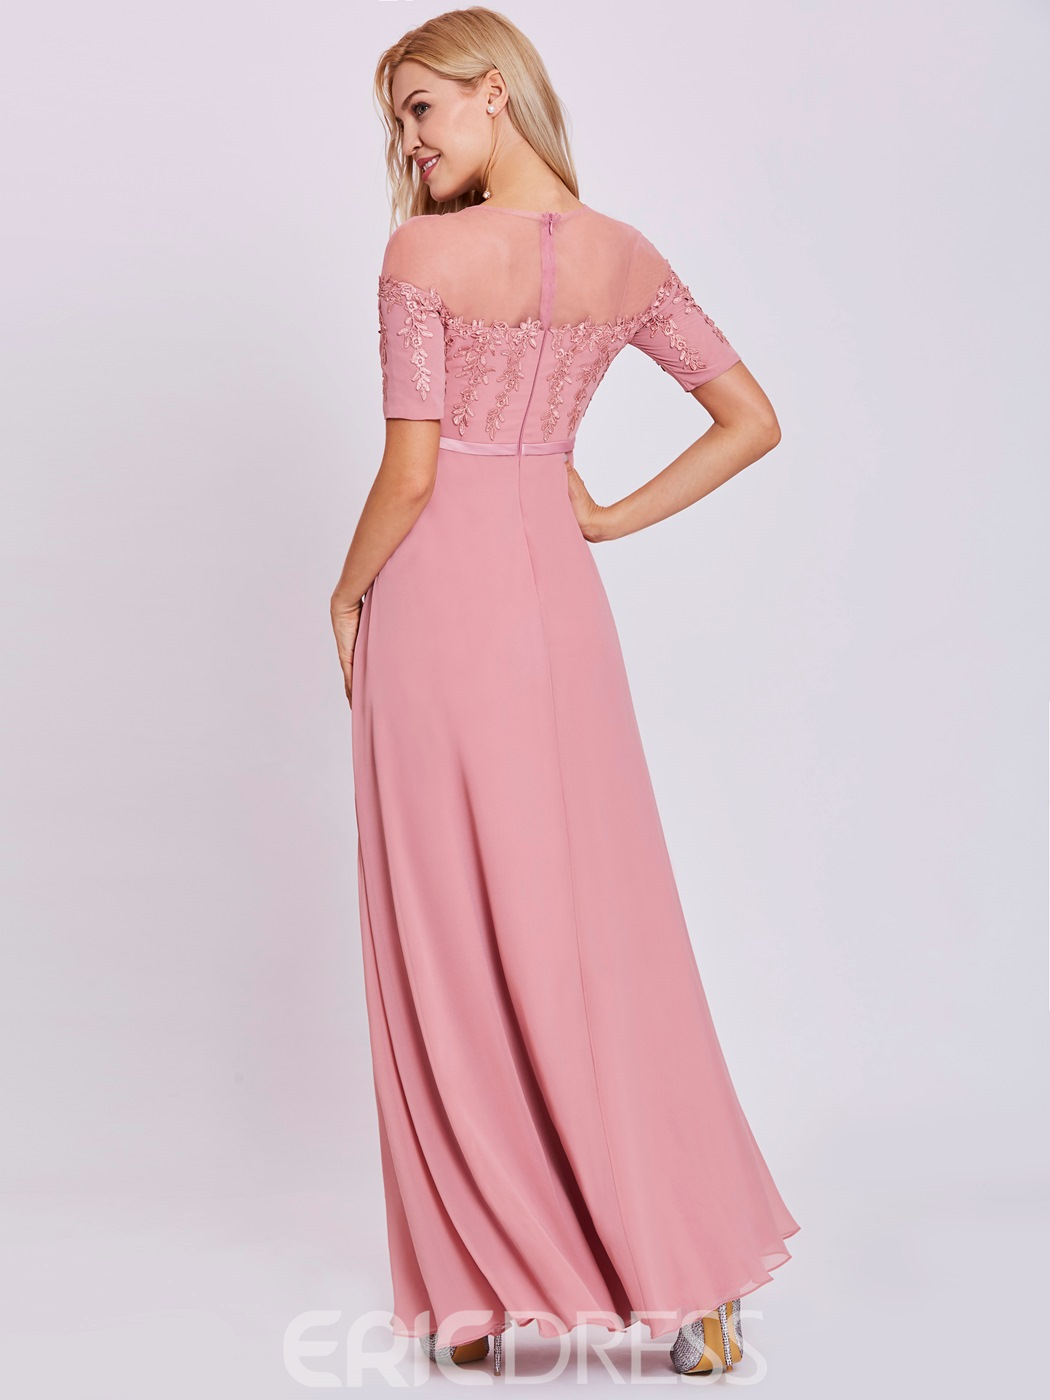 Ericdress A Line Scoop Neck Appliques Evening Dress